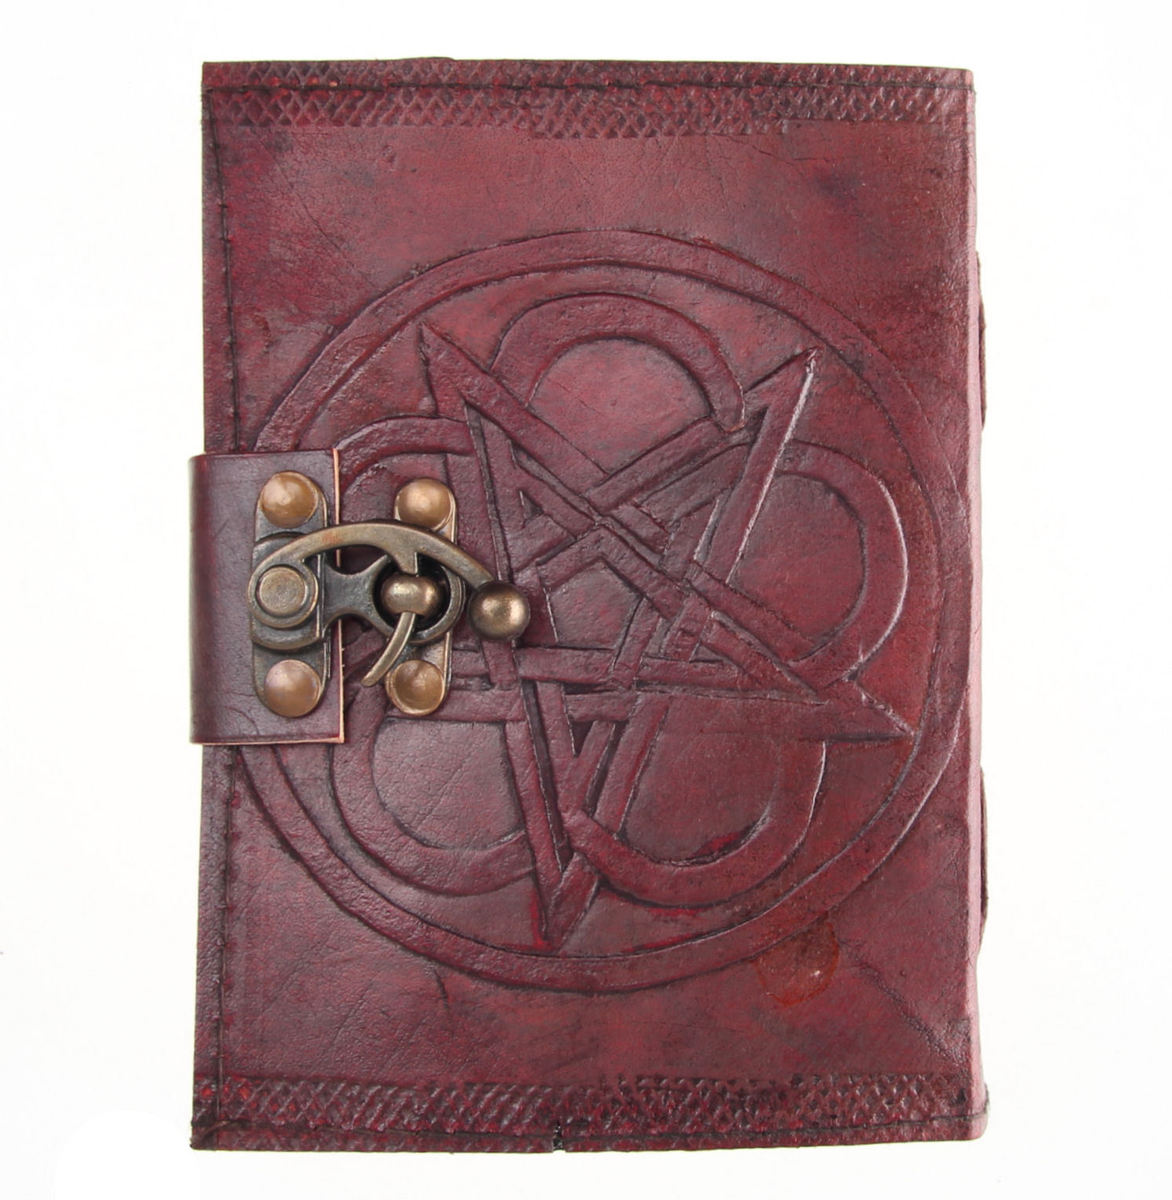 poznámkový blok Pentagram Leather Embossed Journal & Lock - NENOW - D1024C4